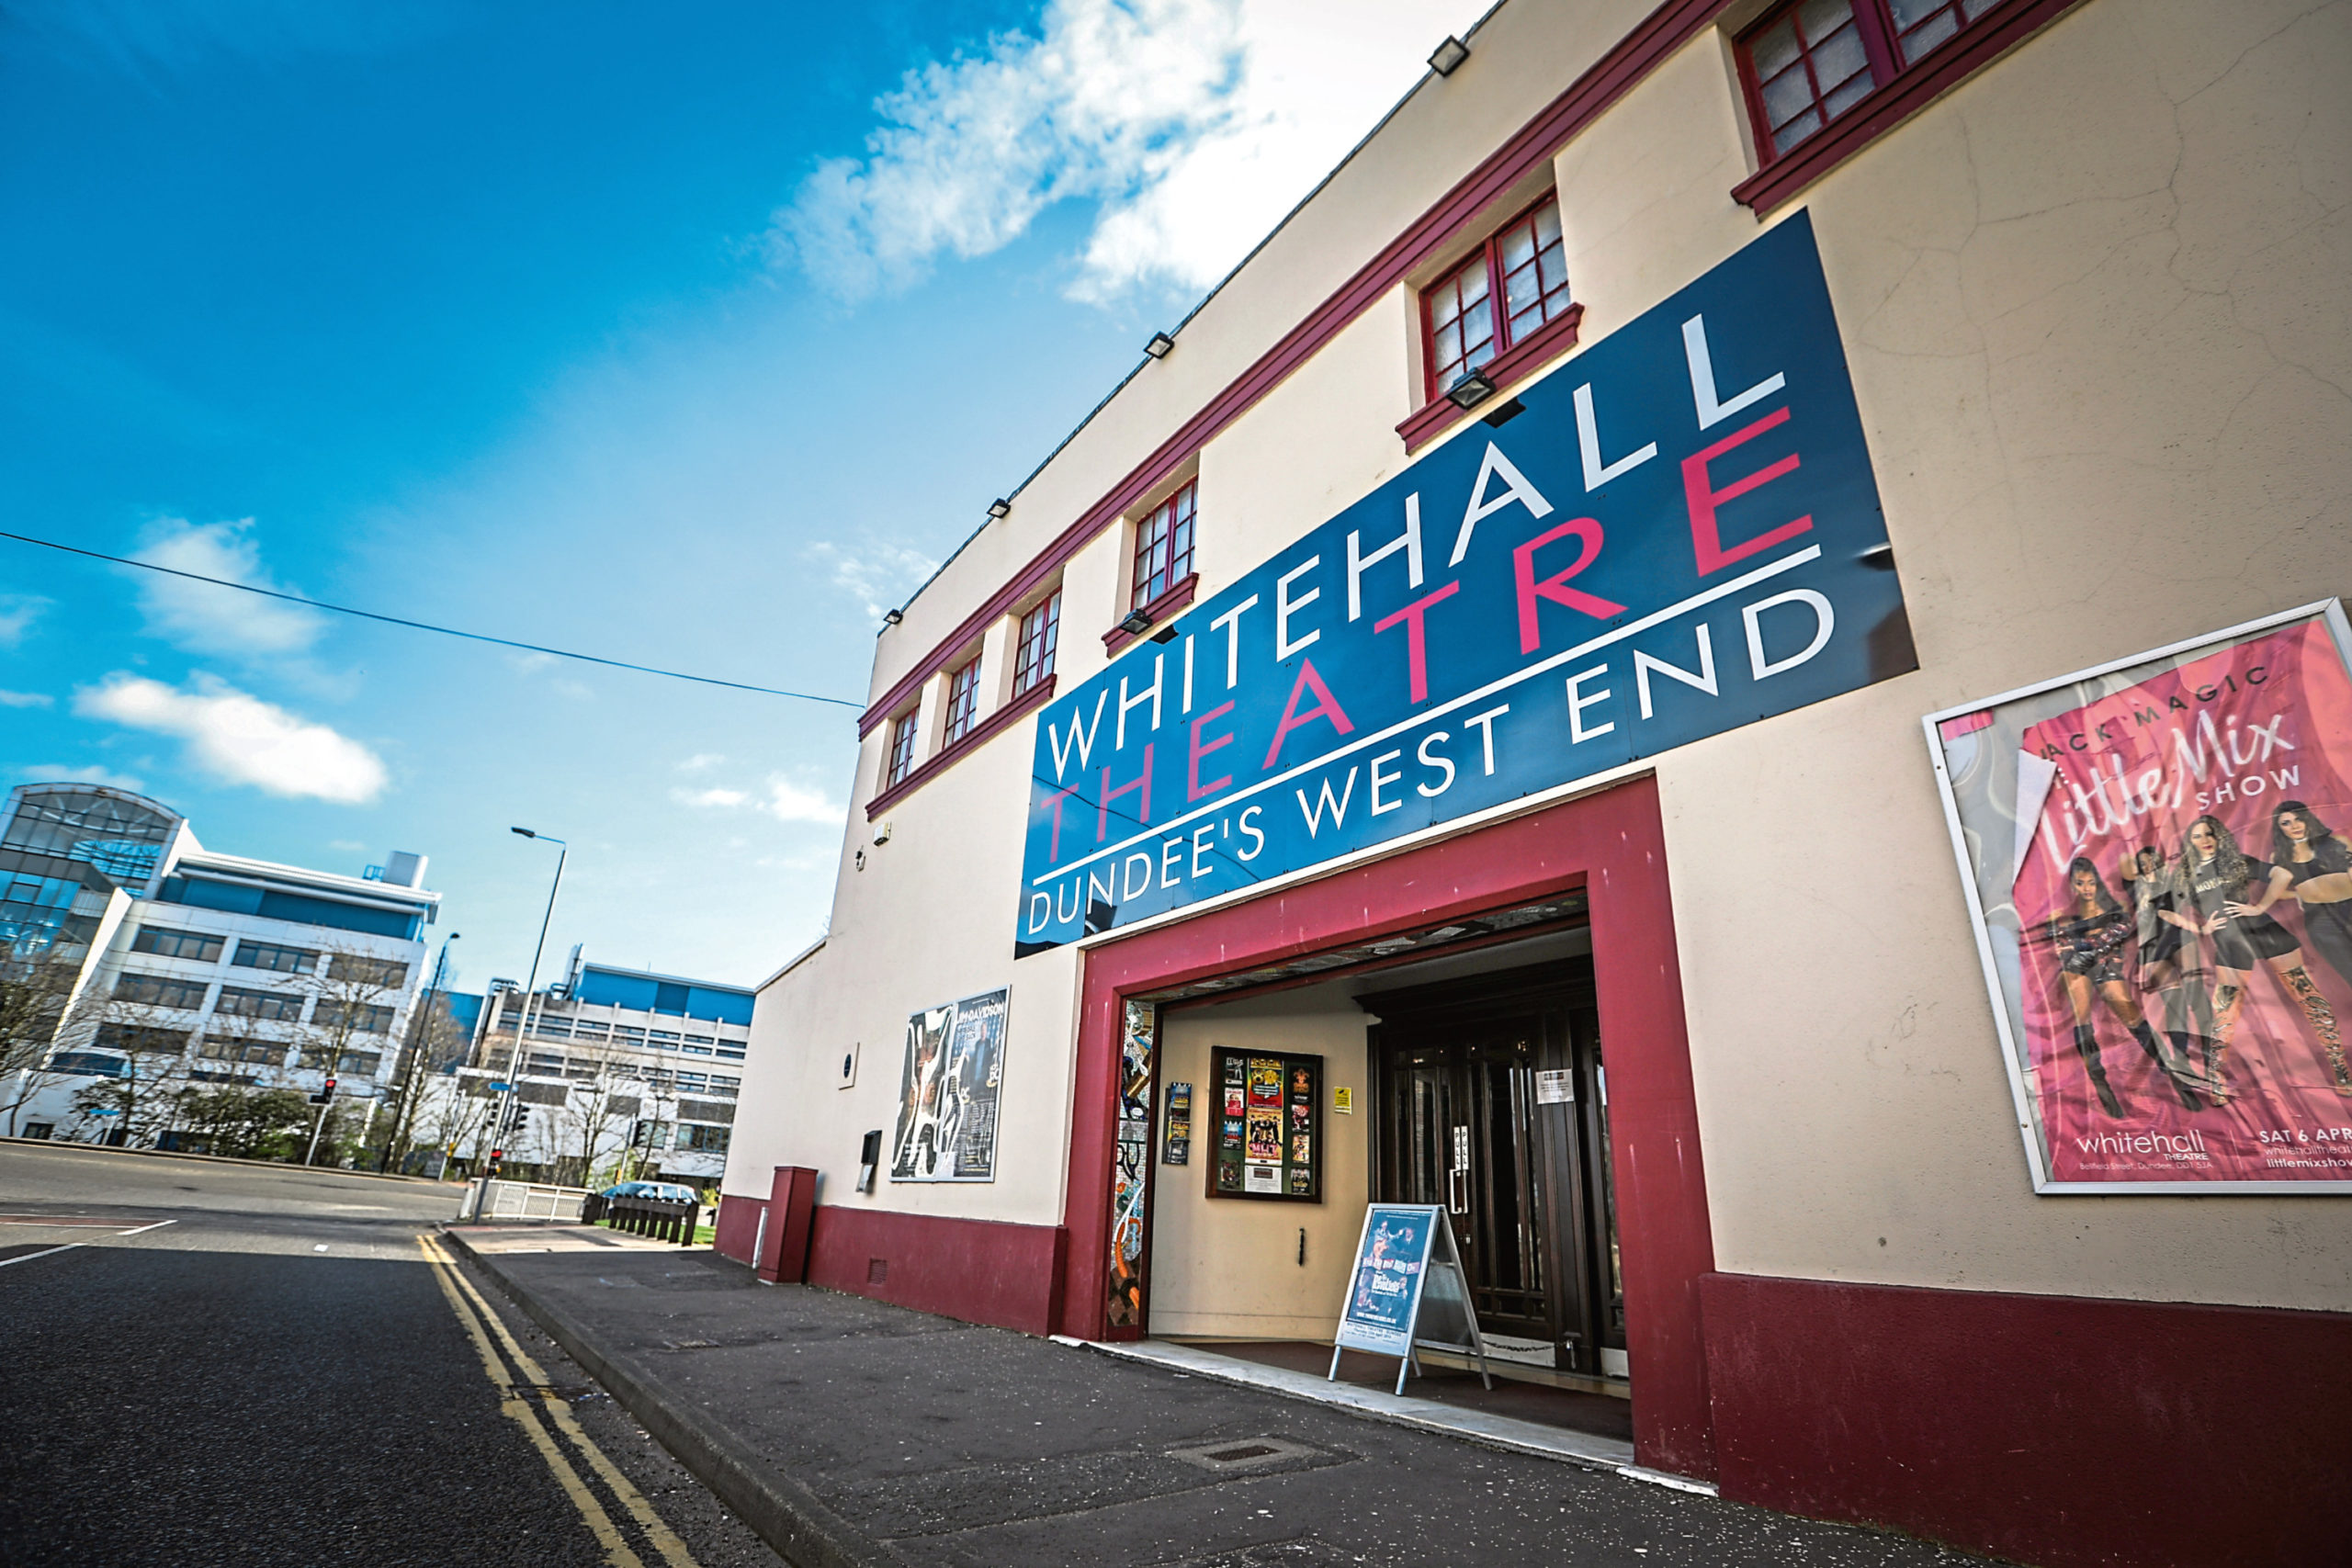 The Whitehall Theatre in Dundee.